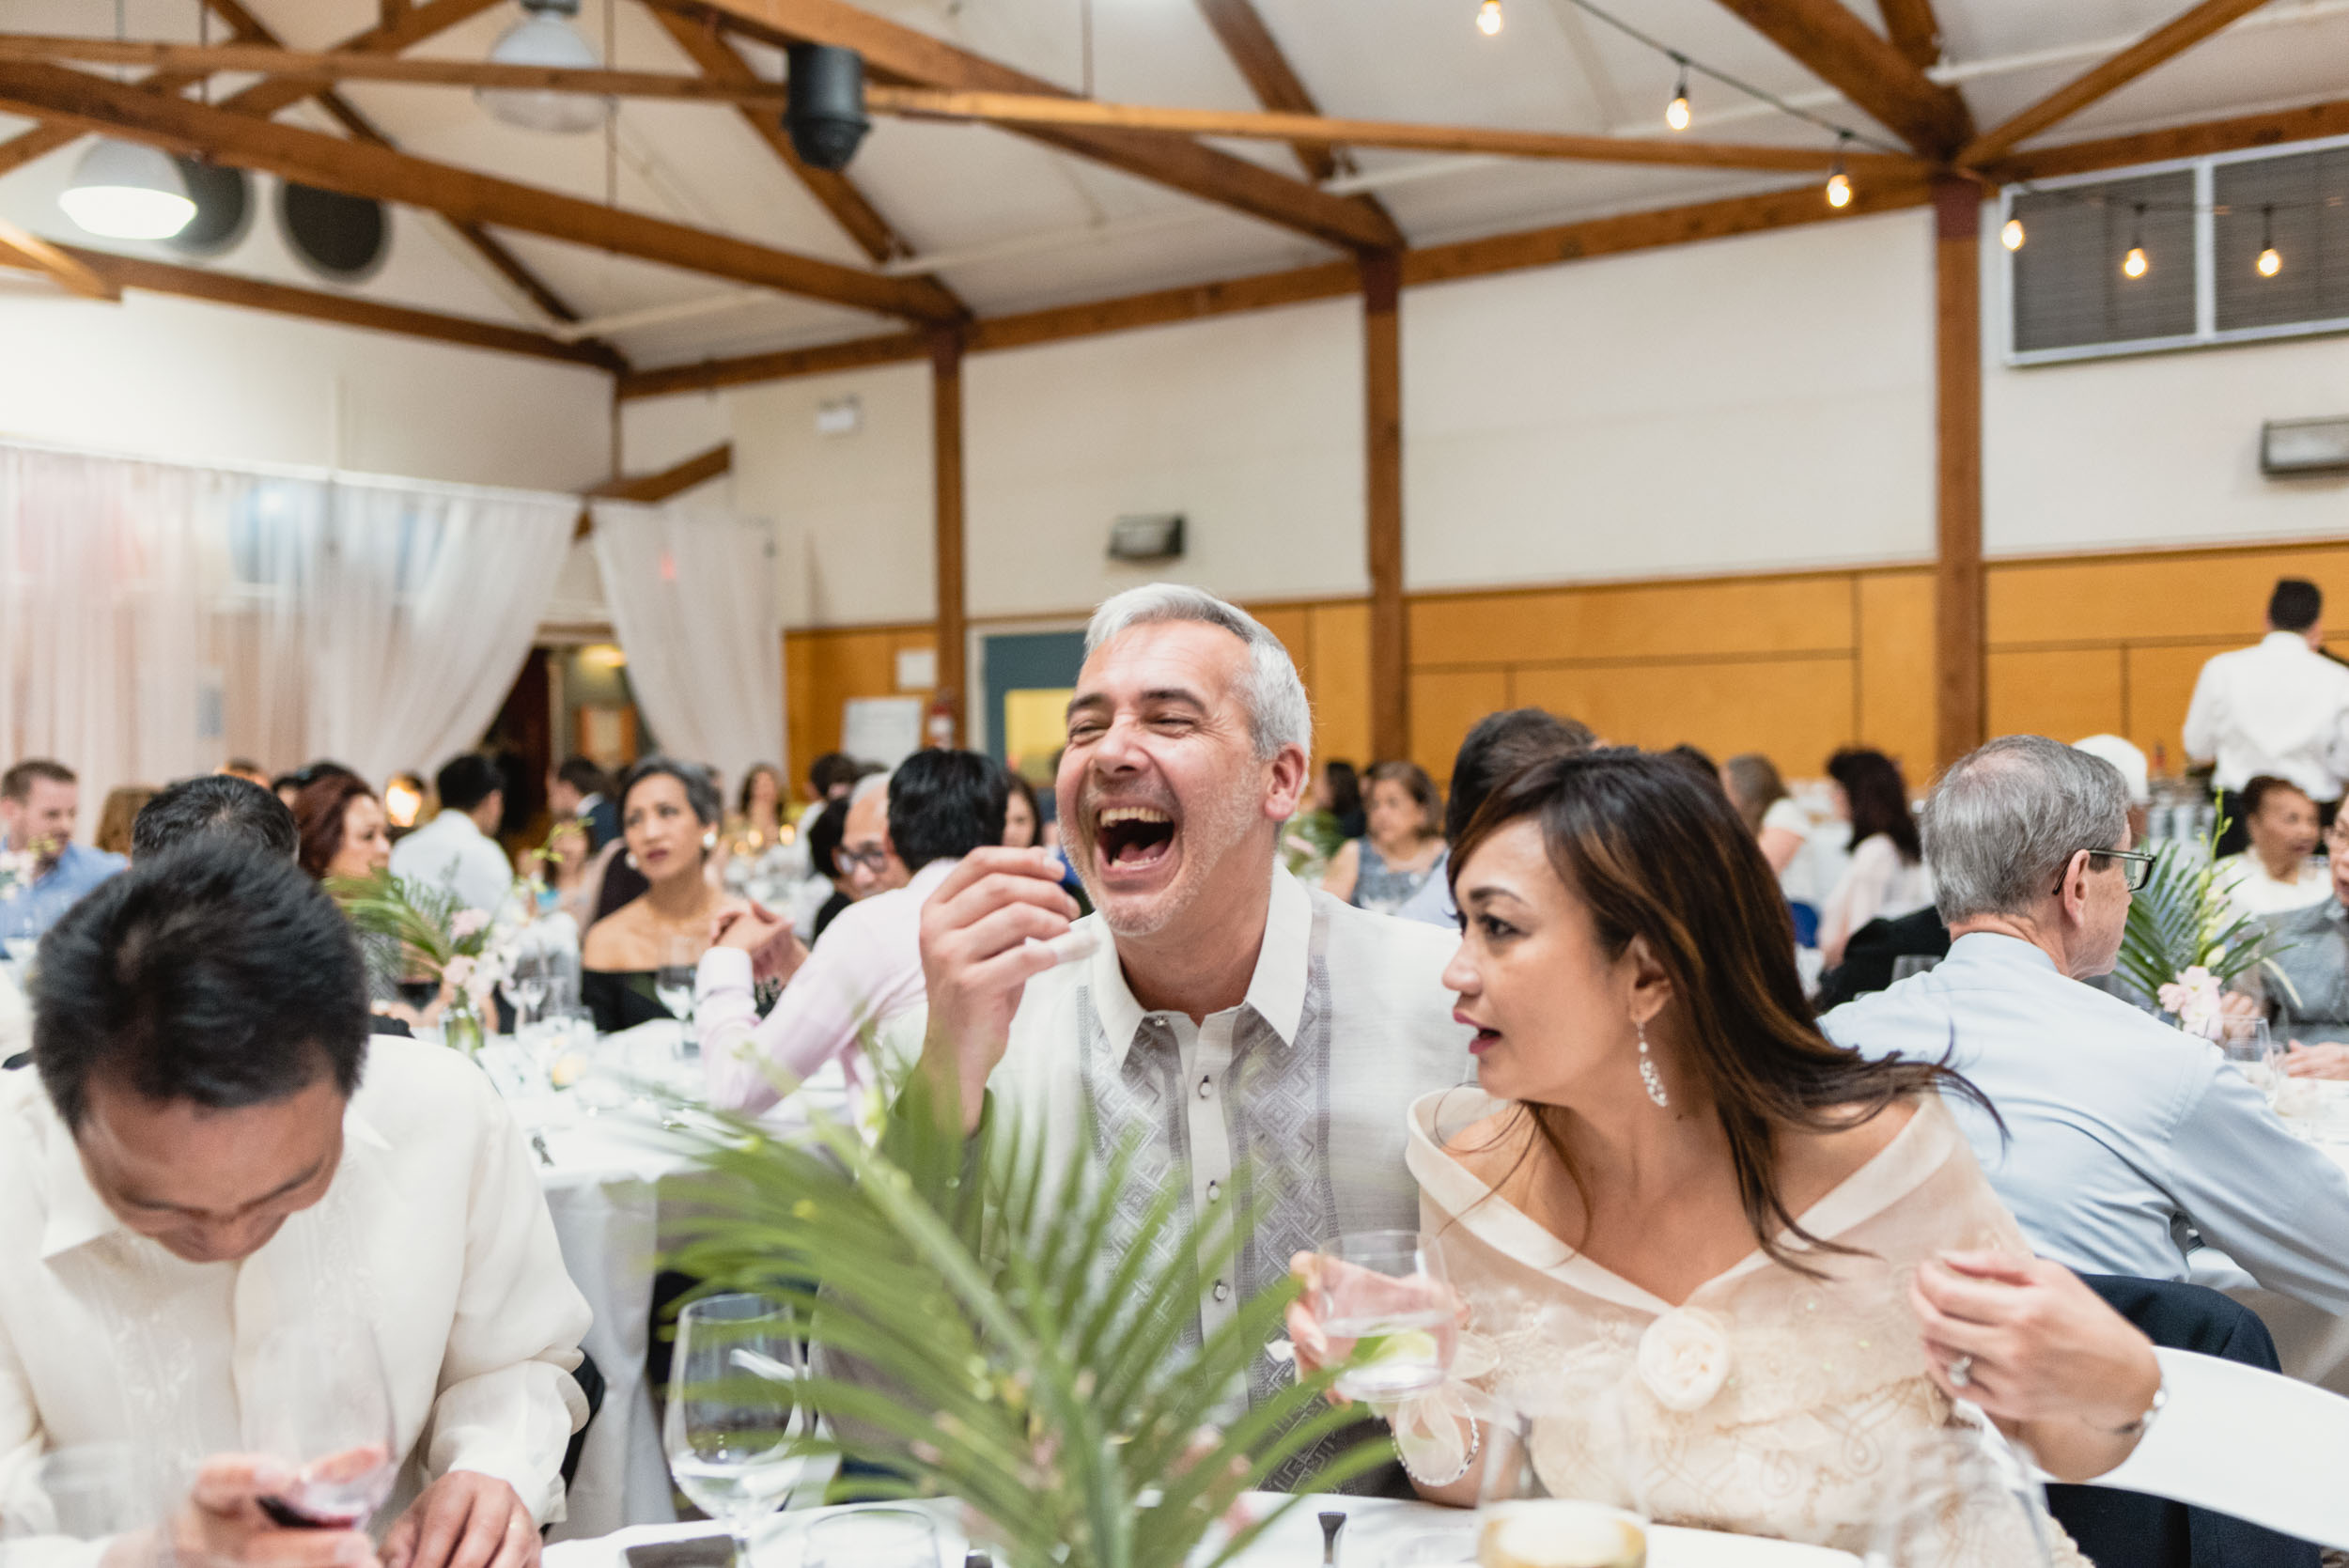 Guests laughing during dinner